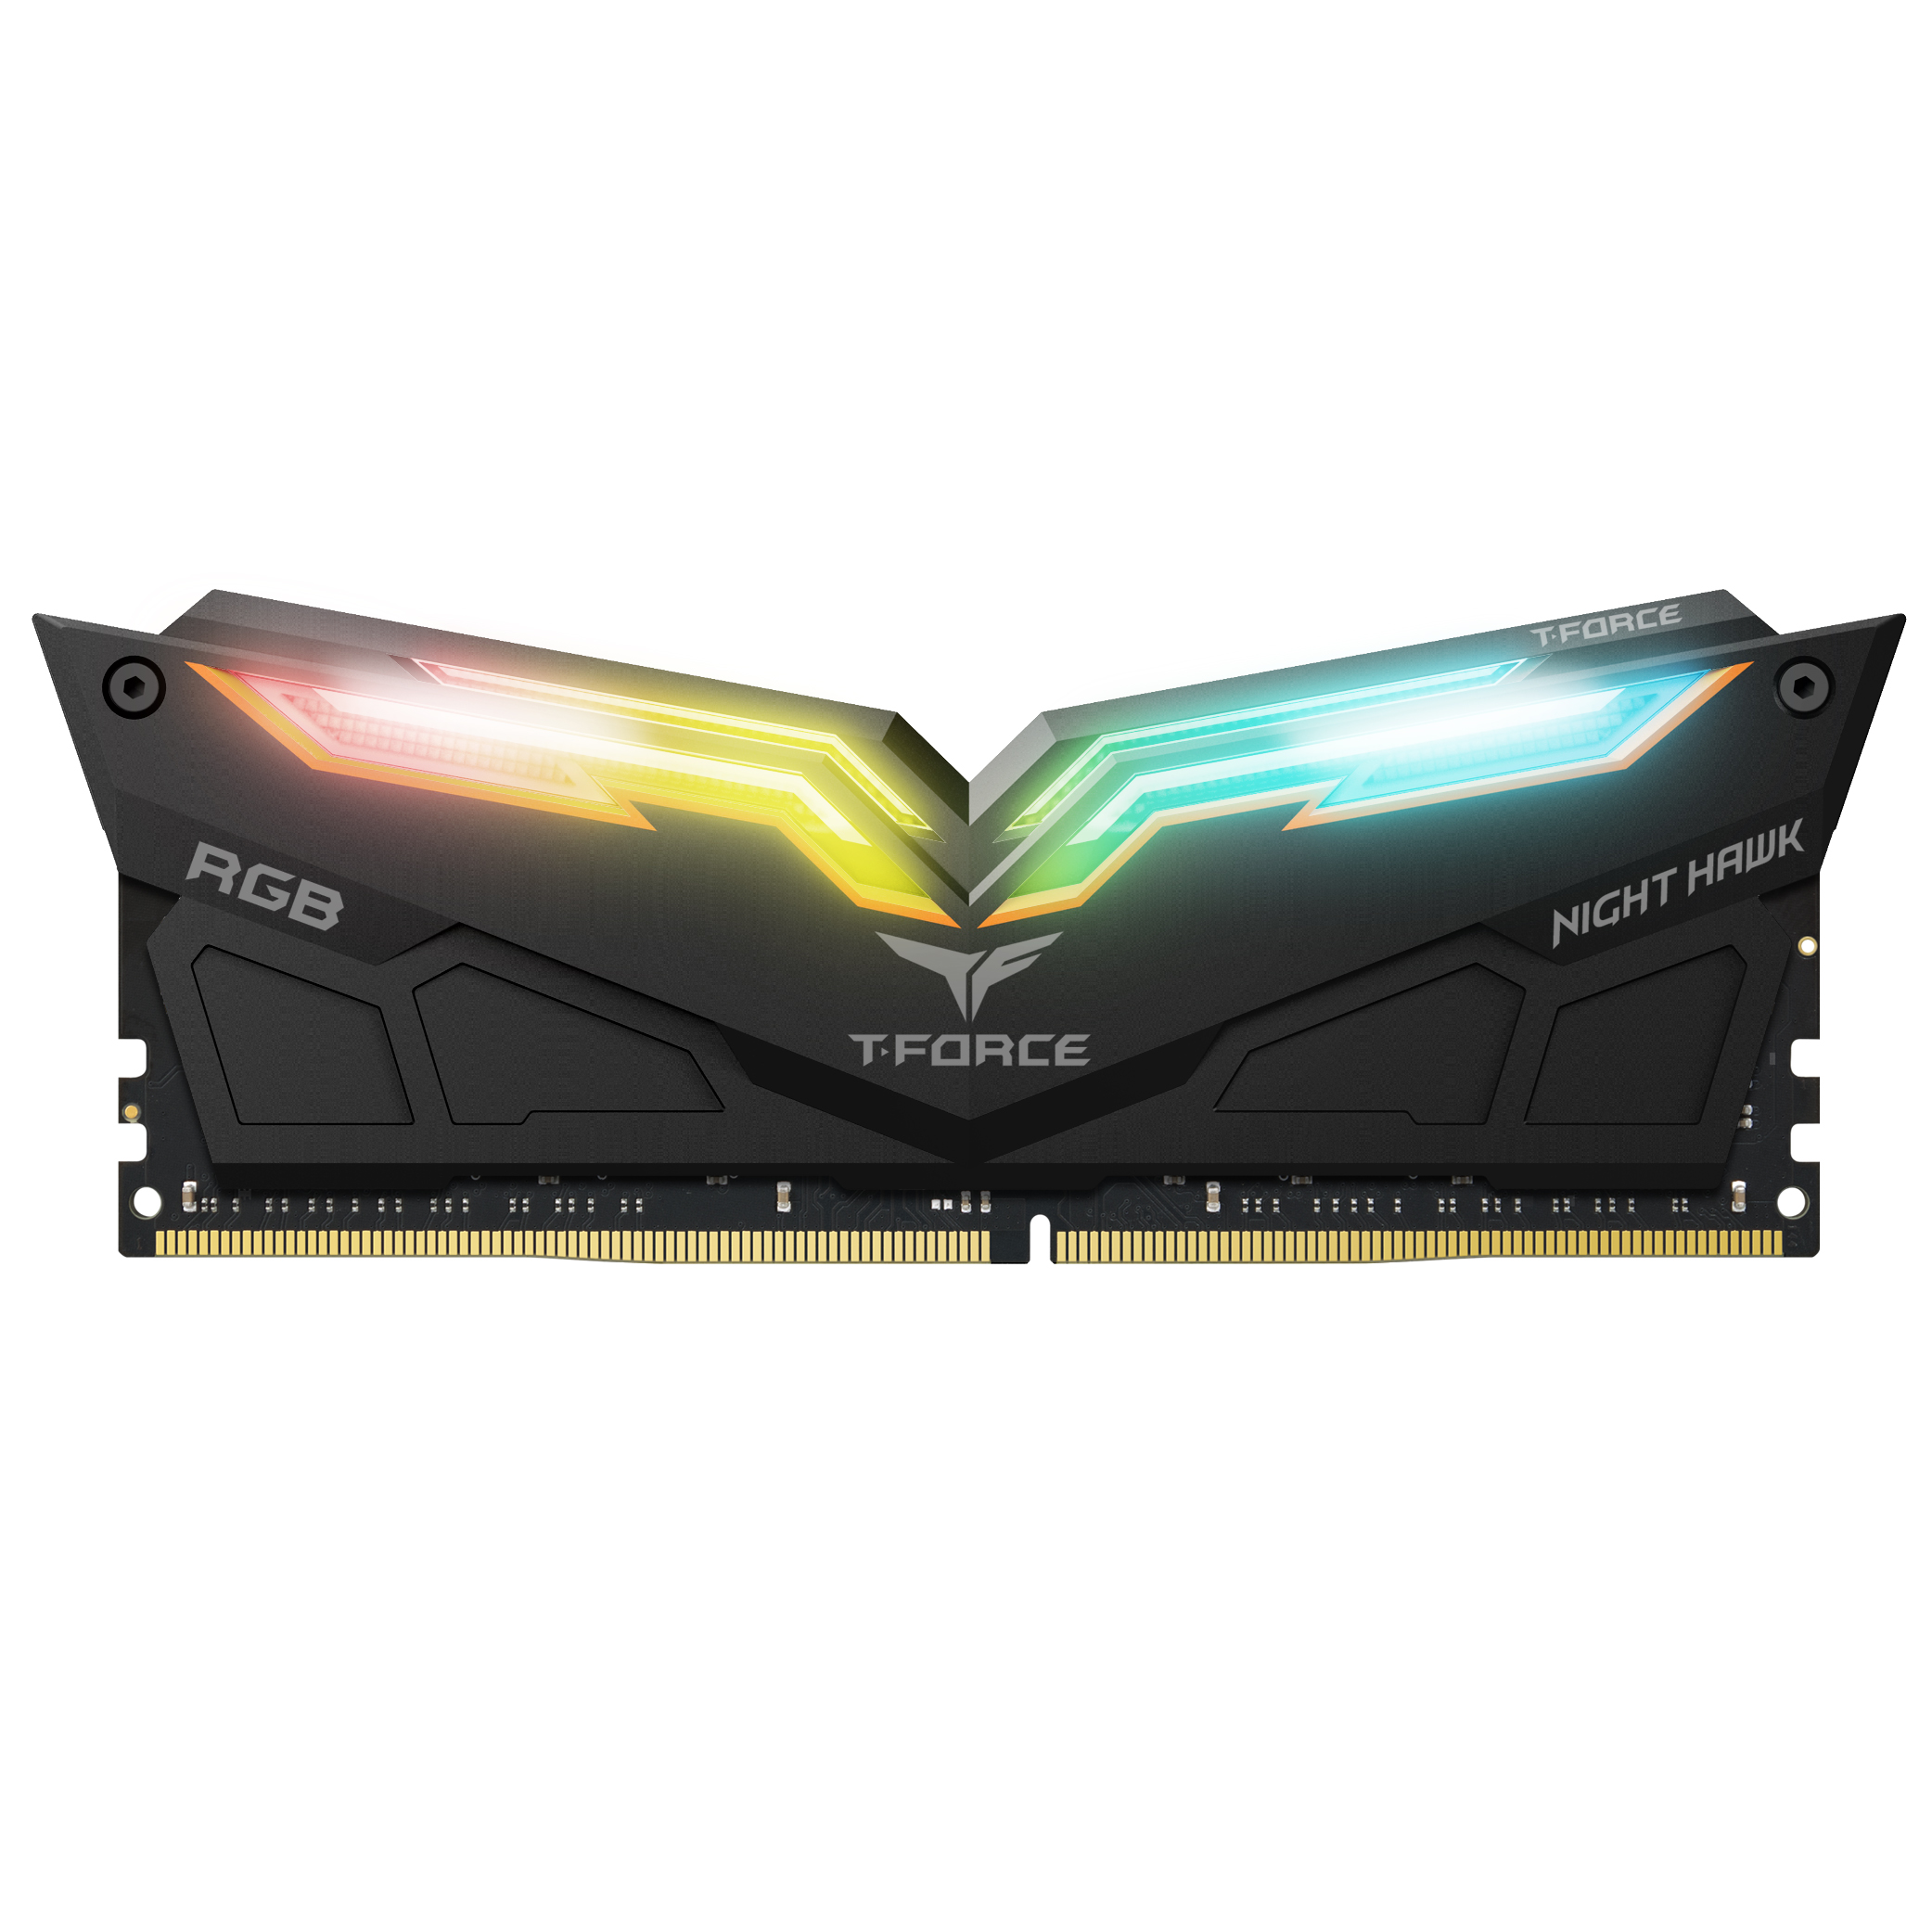 NIGHT HAWK  RGB DDR4 3200桌上型記憶體